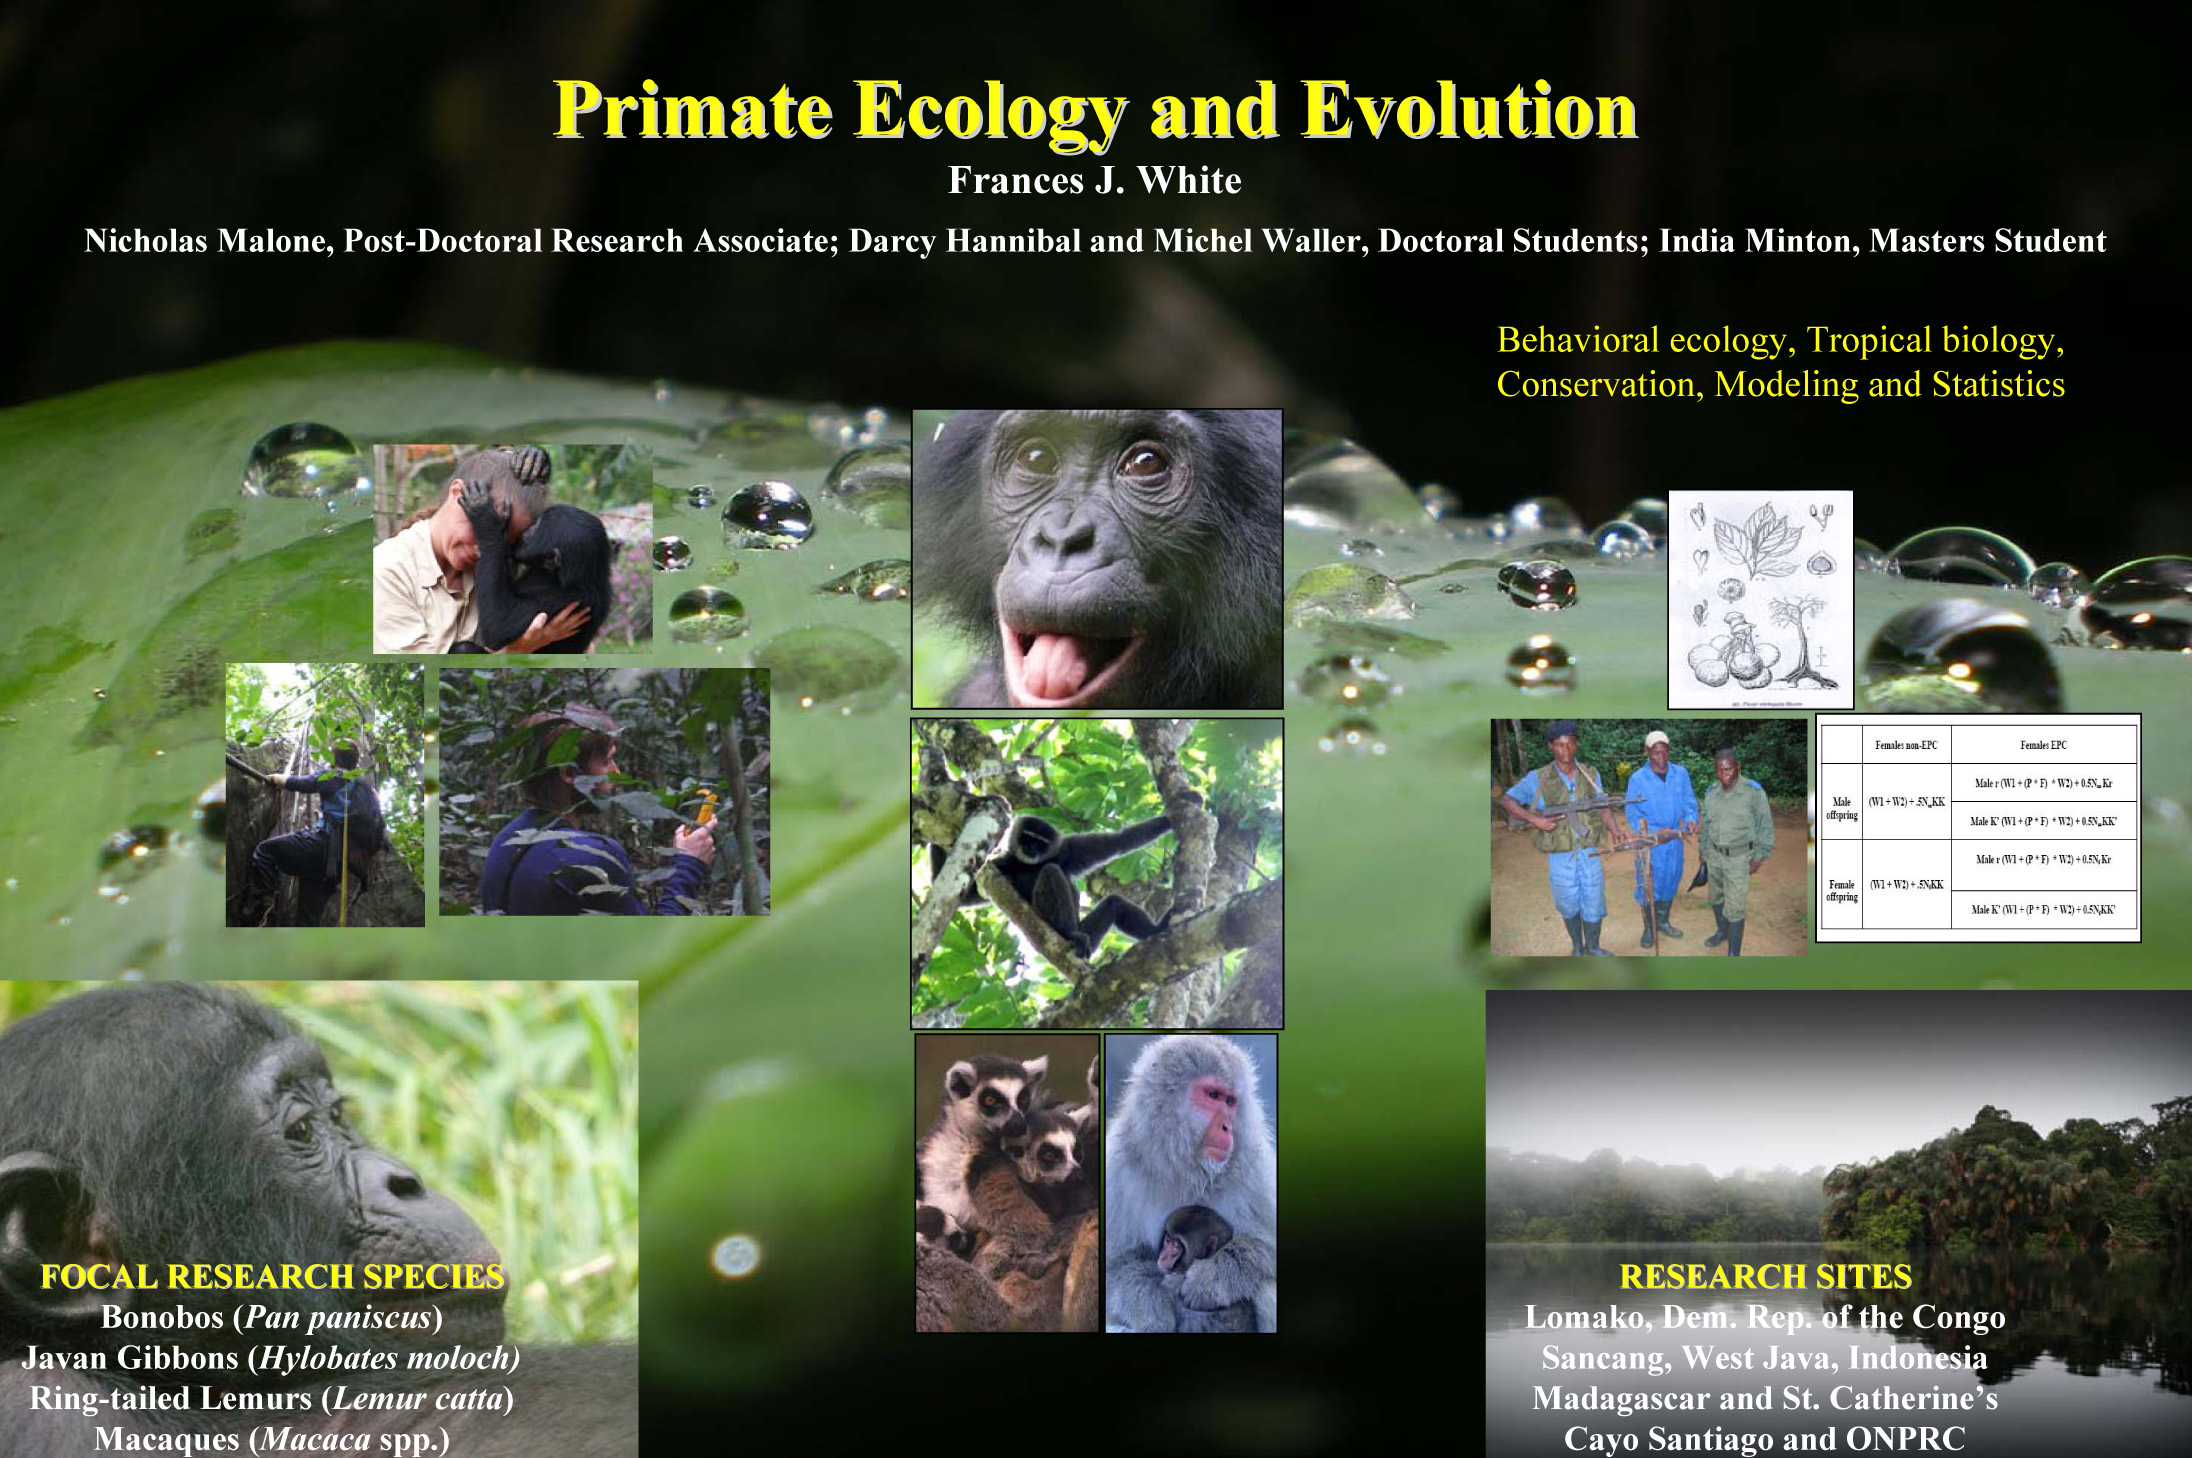 ecology and evolution Welcome to the sensory ecology and evolution group we study animal coloration and vision in a wide range of animals, including birds, reptiles, crabs, insects.